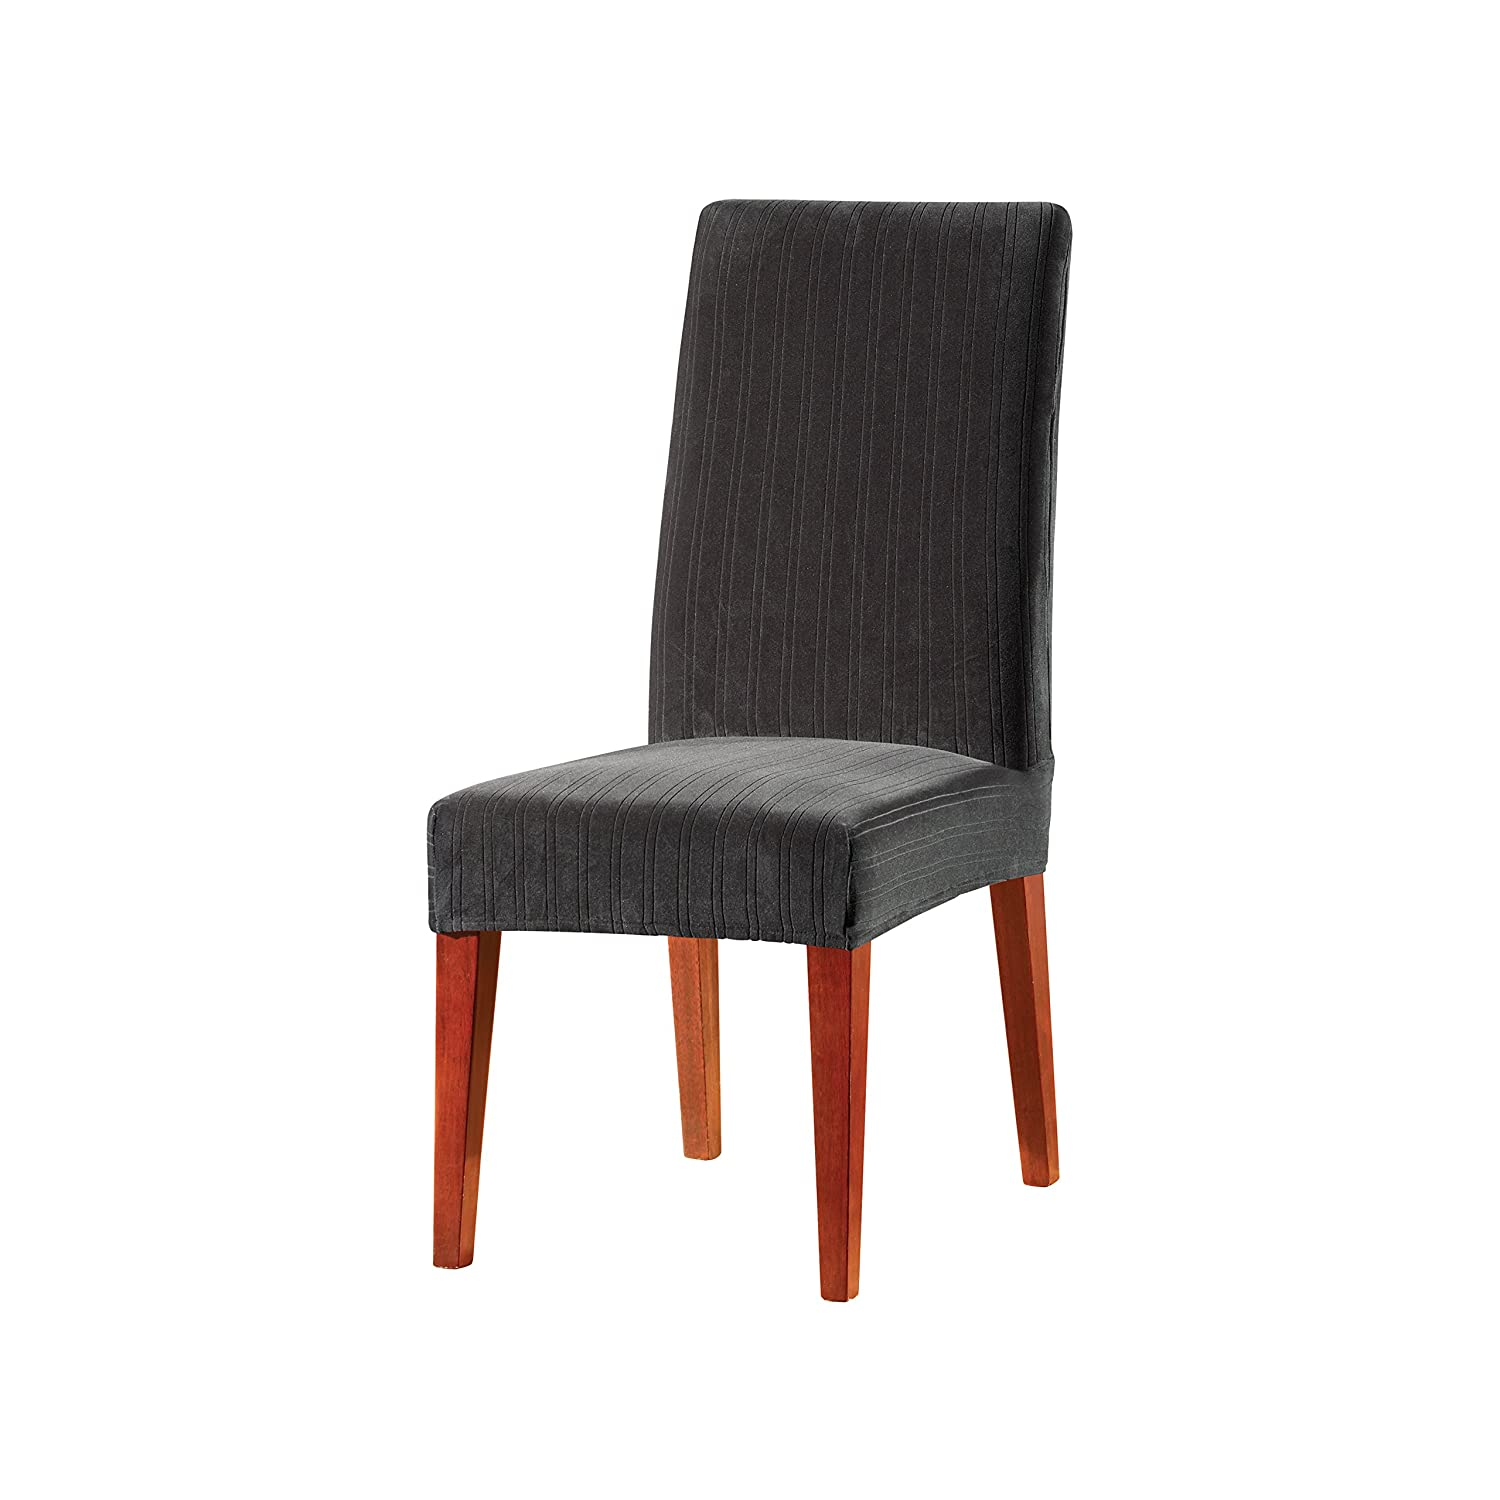 Black Dining Chair SureFit Stretch Pinstripe - Wing Chair Slipcover - Taupe